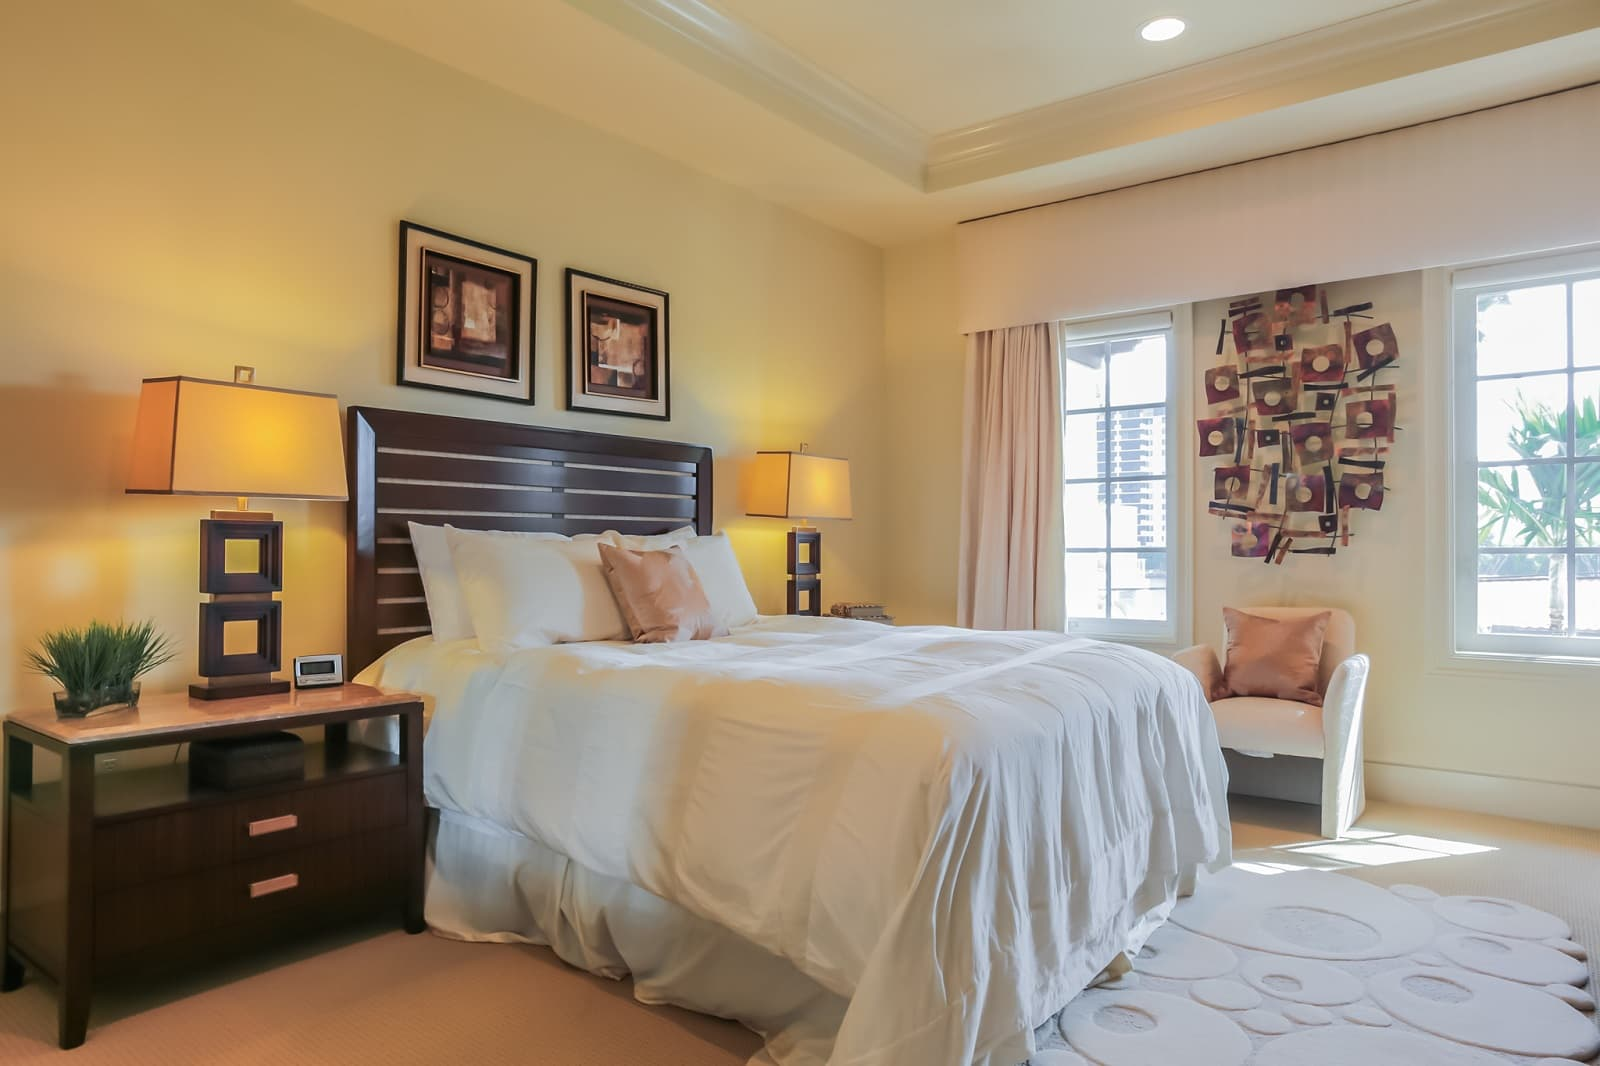 Real Estate Photography in Boca Raton - FL - USA - Bedroom View